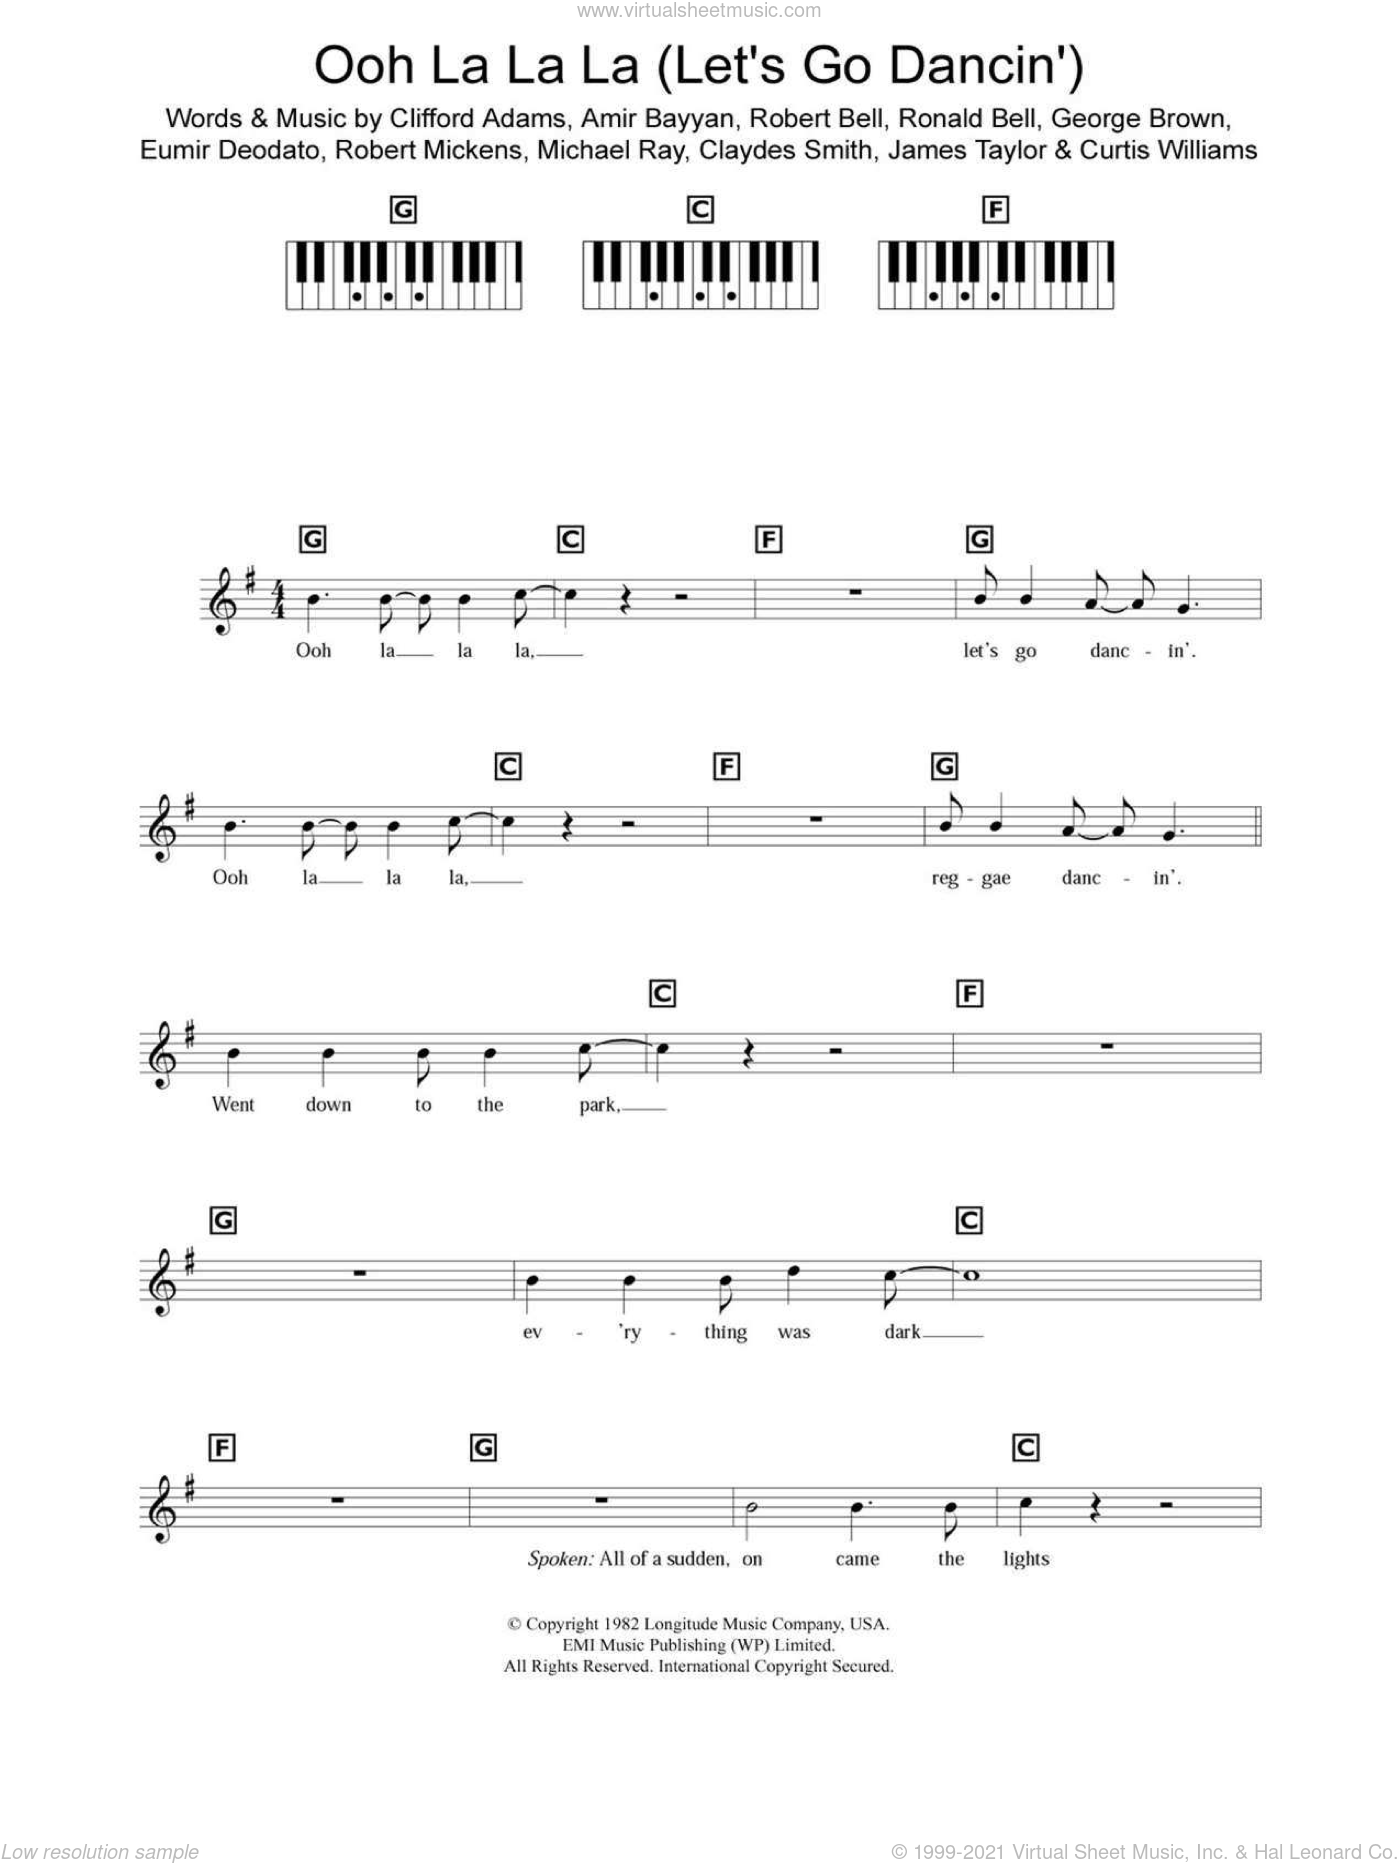 Ooh La La La (Let's Go Dancin') sheet music for piano solo (chords, lyrics, melody) by Kool And The Gang, Amir Bayyan, Claydes Smith, Clifford Adams, Curtis Williams, Eumir Deodato, George Brown, James Taylor, Michael Ray, Robert Bell, Robert Mickens and Ronald Bell, intermediate piano (chords, lyrics, melody)